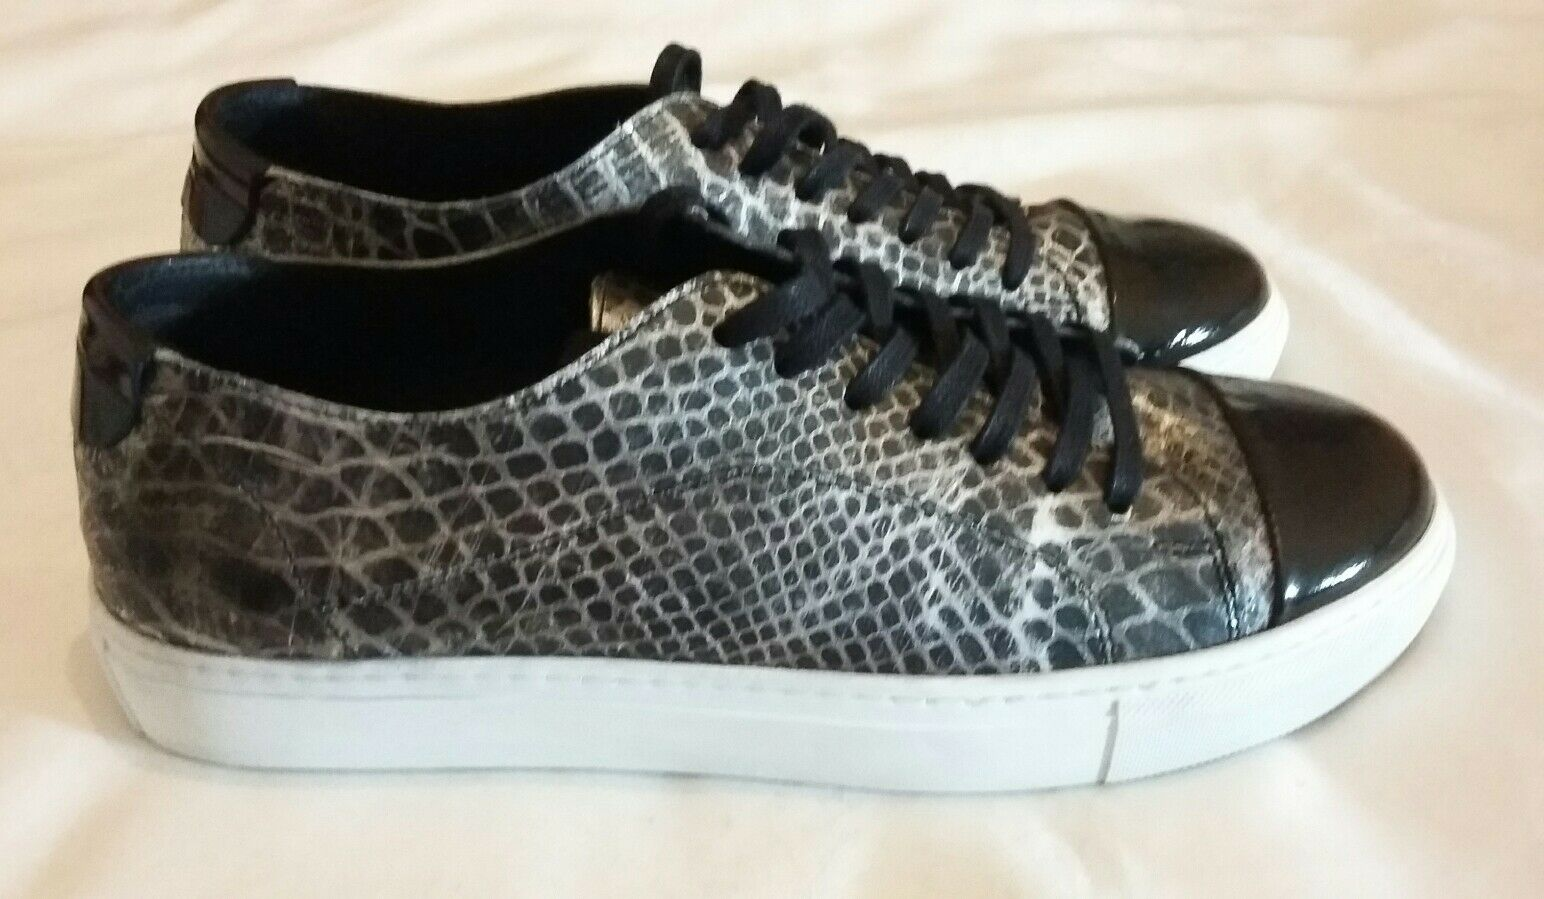 GARMENT PROJECT Classic Lace-up Snake Print Leather Sneakers Black  uk 7 eu 40